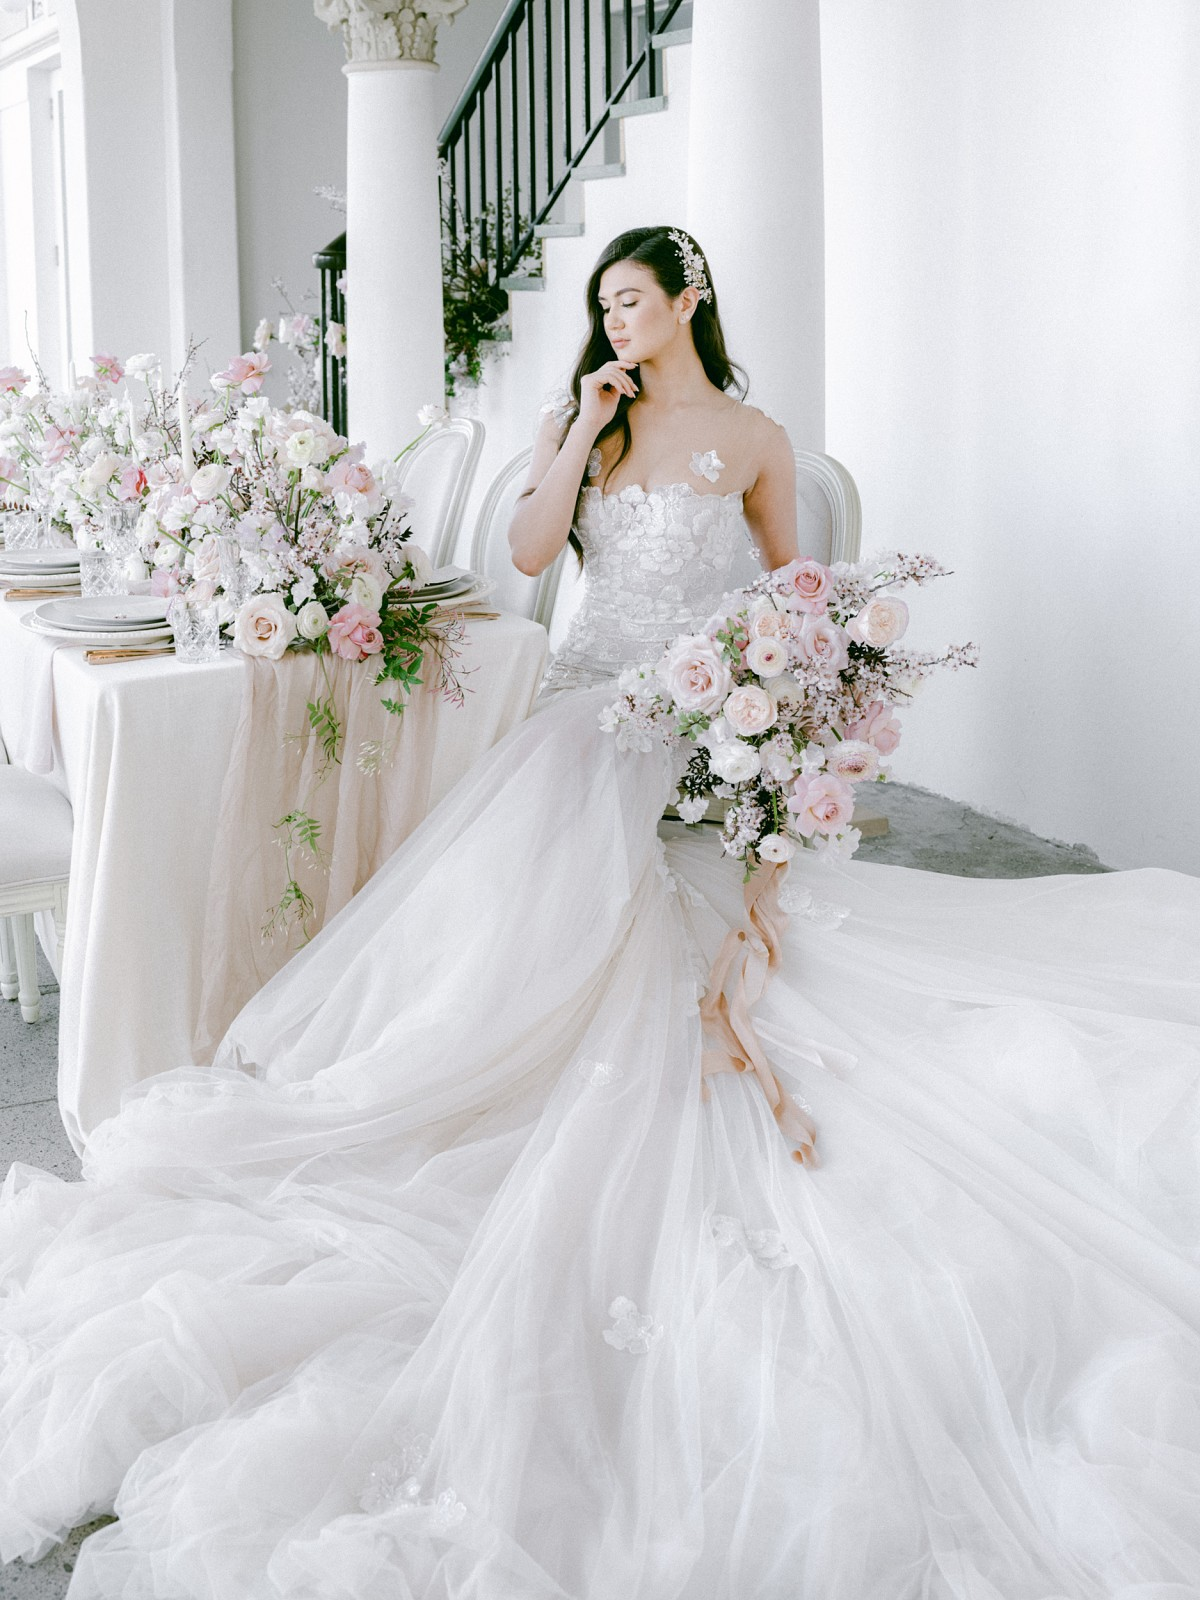 HOW TO CHOOSE YOUR WEDDING DRESS AND NOT REGRET IT